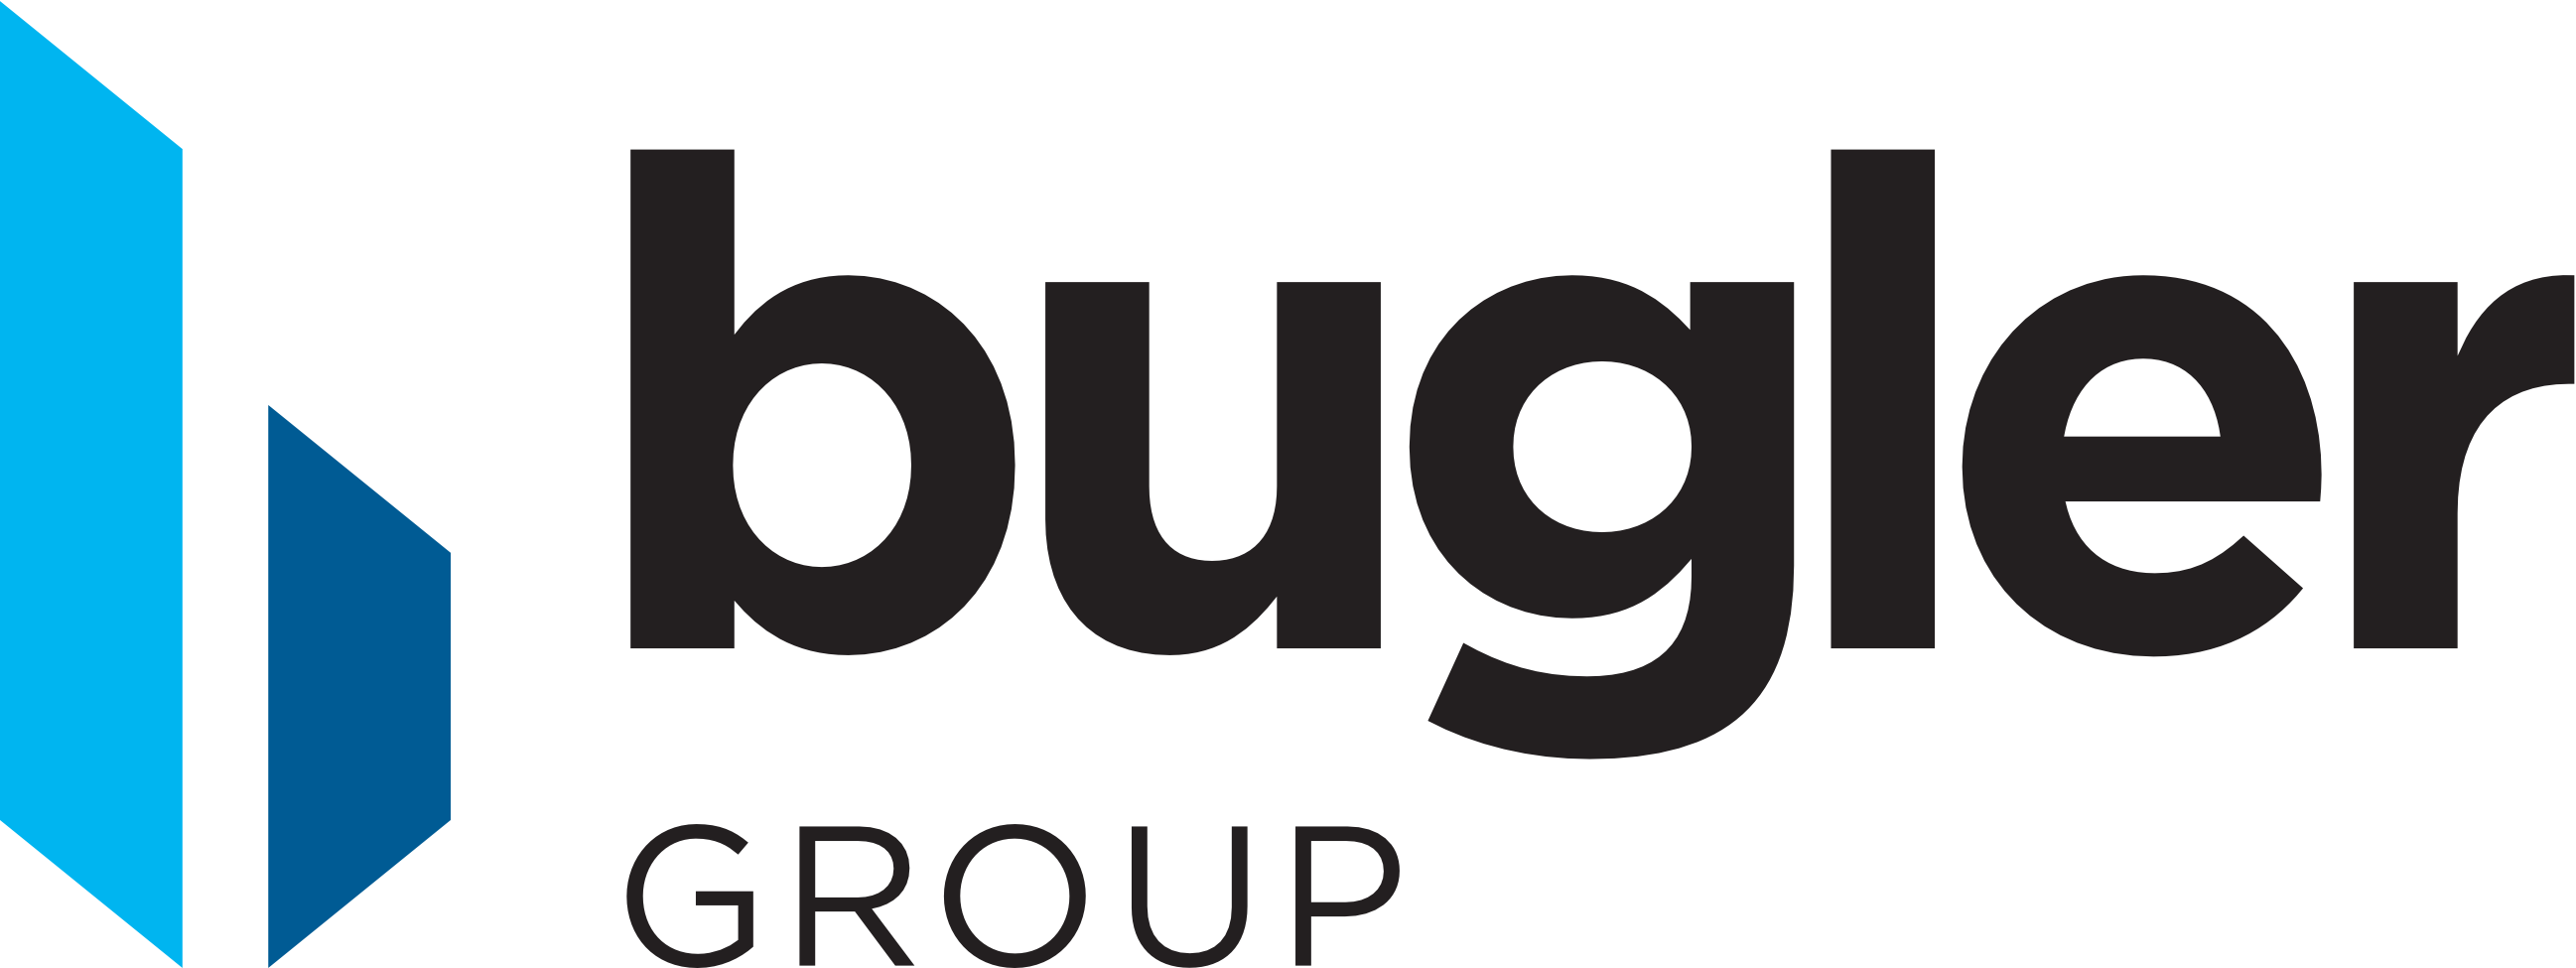 Logo for Bugler Group